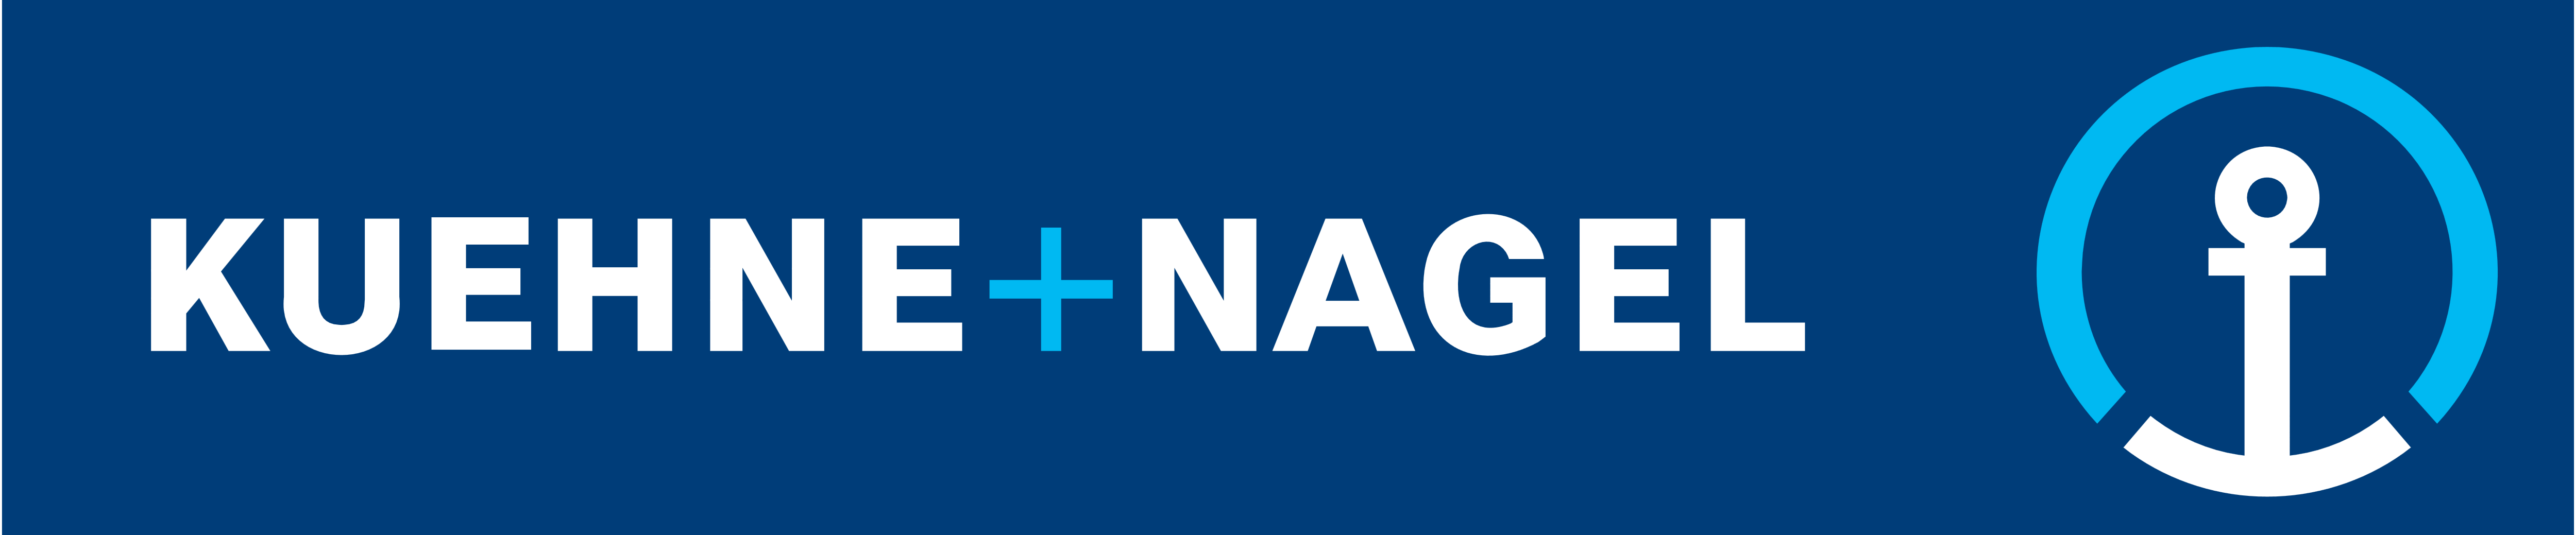 kuehne nagel logos download all free vector download png all free vector download design